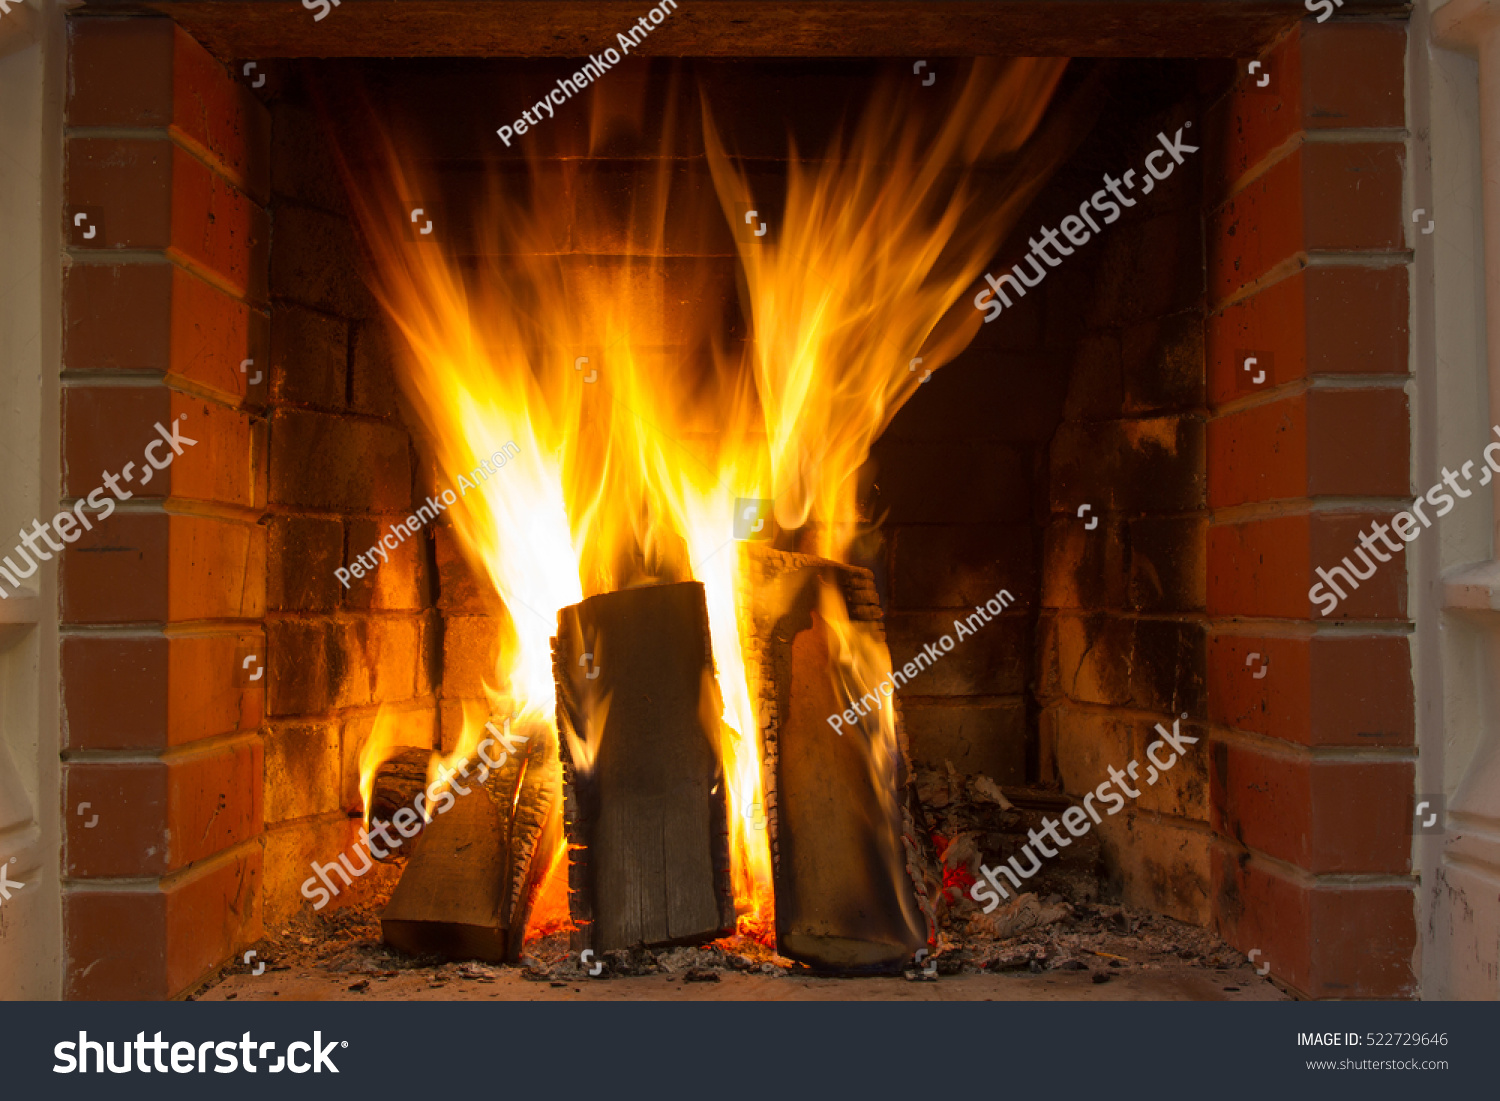 burning wood fireplace close stock photo edit now 522729646